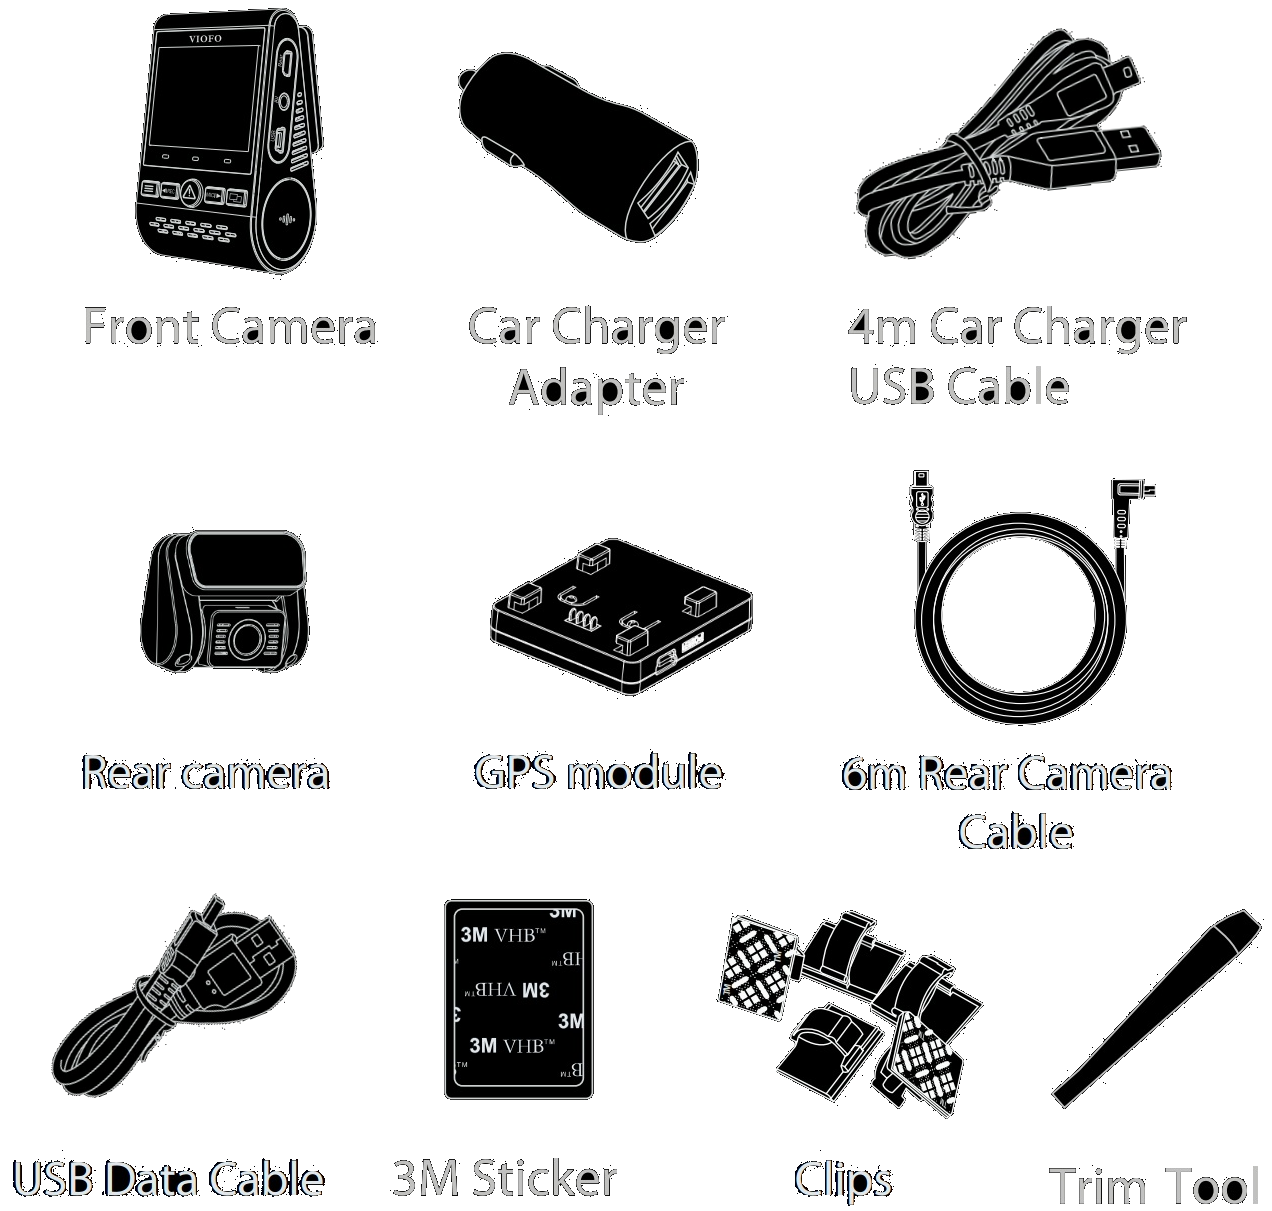 The package contains the front camera, rear camera, GPS module, Dual-USB power adapter, 4-meter USB-to-miniUSB power cord, 6-meter rear camera connection cable, USB data cable, trim pry tool, cable clips, spare 3M stickers and user manual